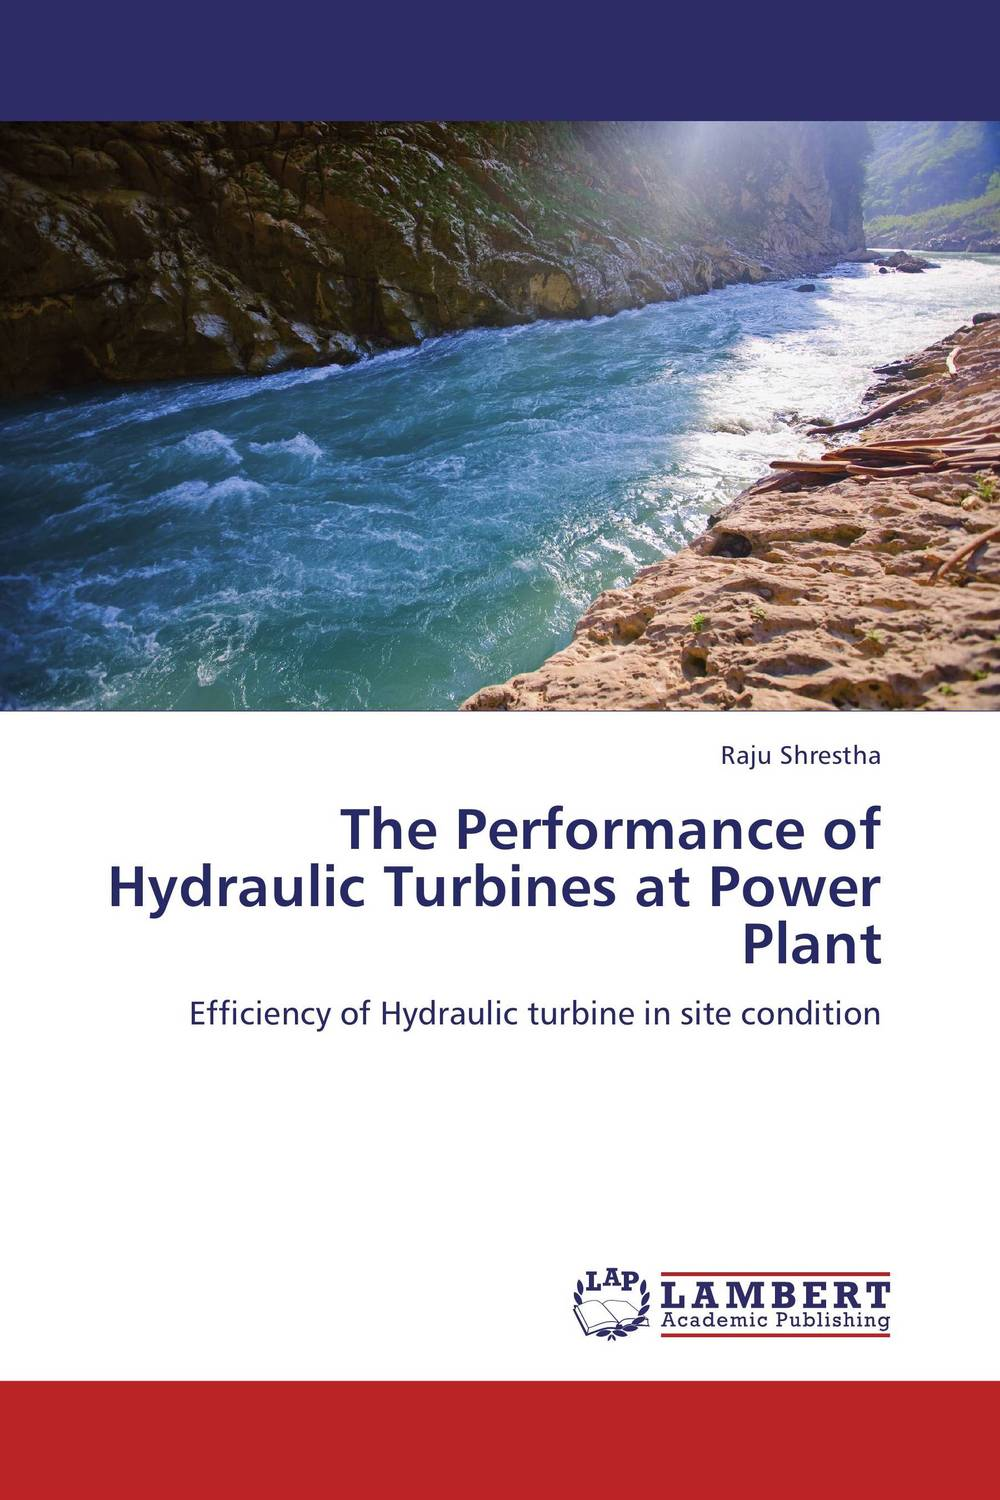 The Performance of Hydraulic Turbines at Power Plant